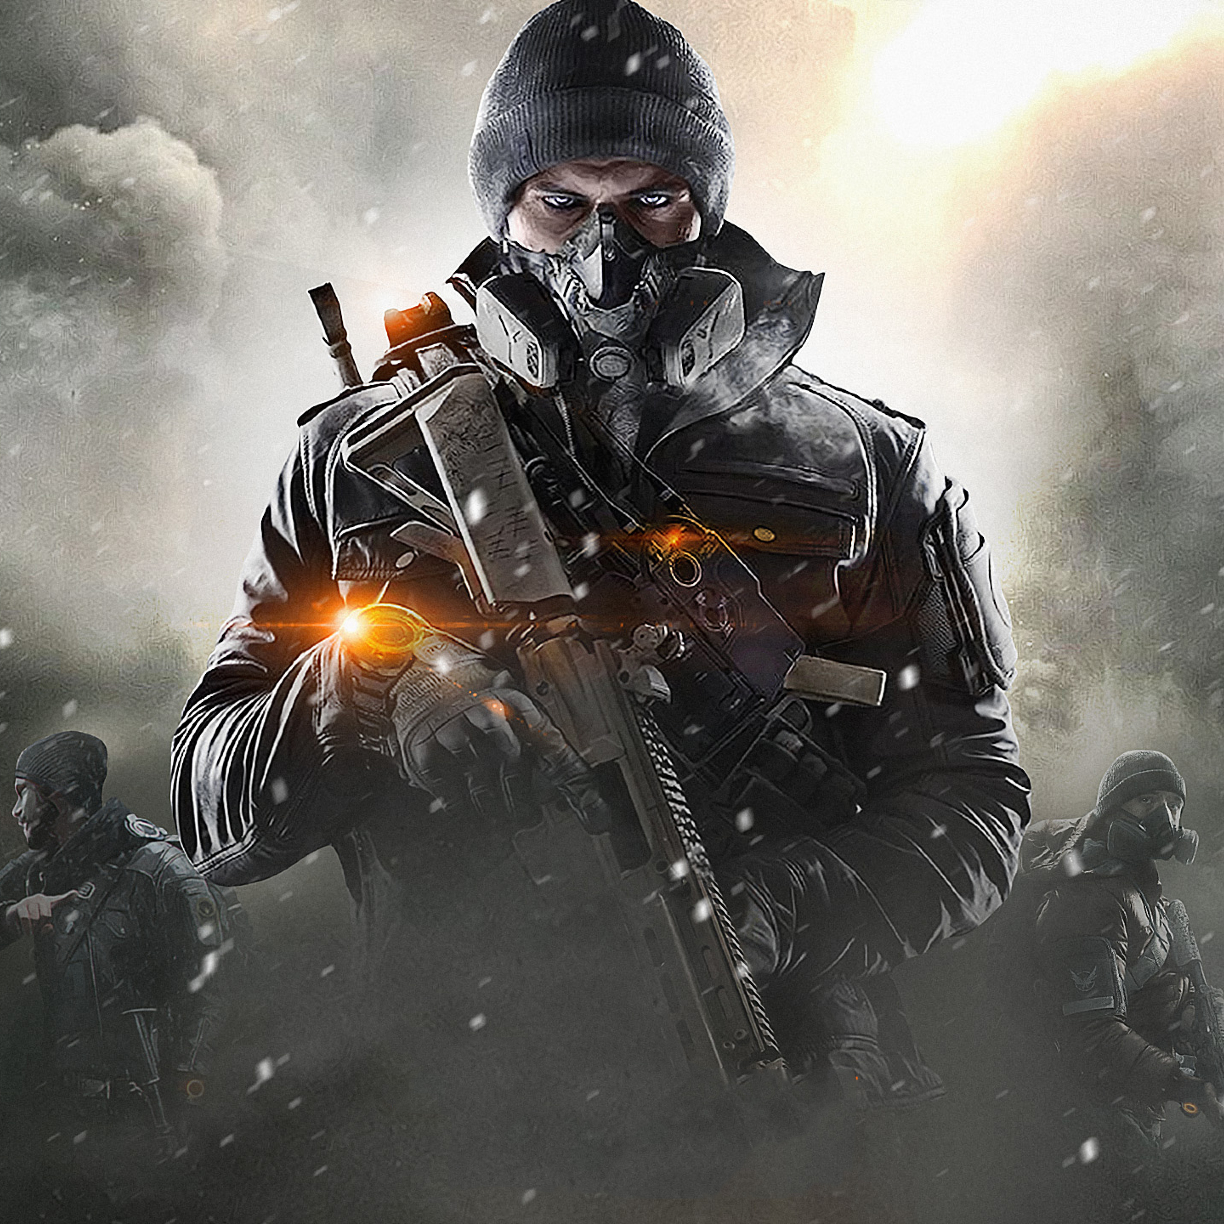 Tom Clancy's The Division, Full HD 2K Wallpaper